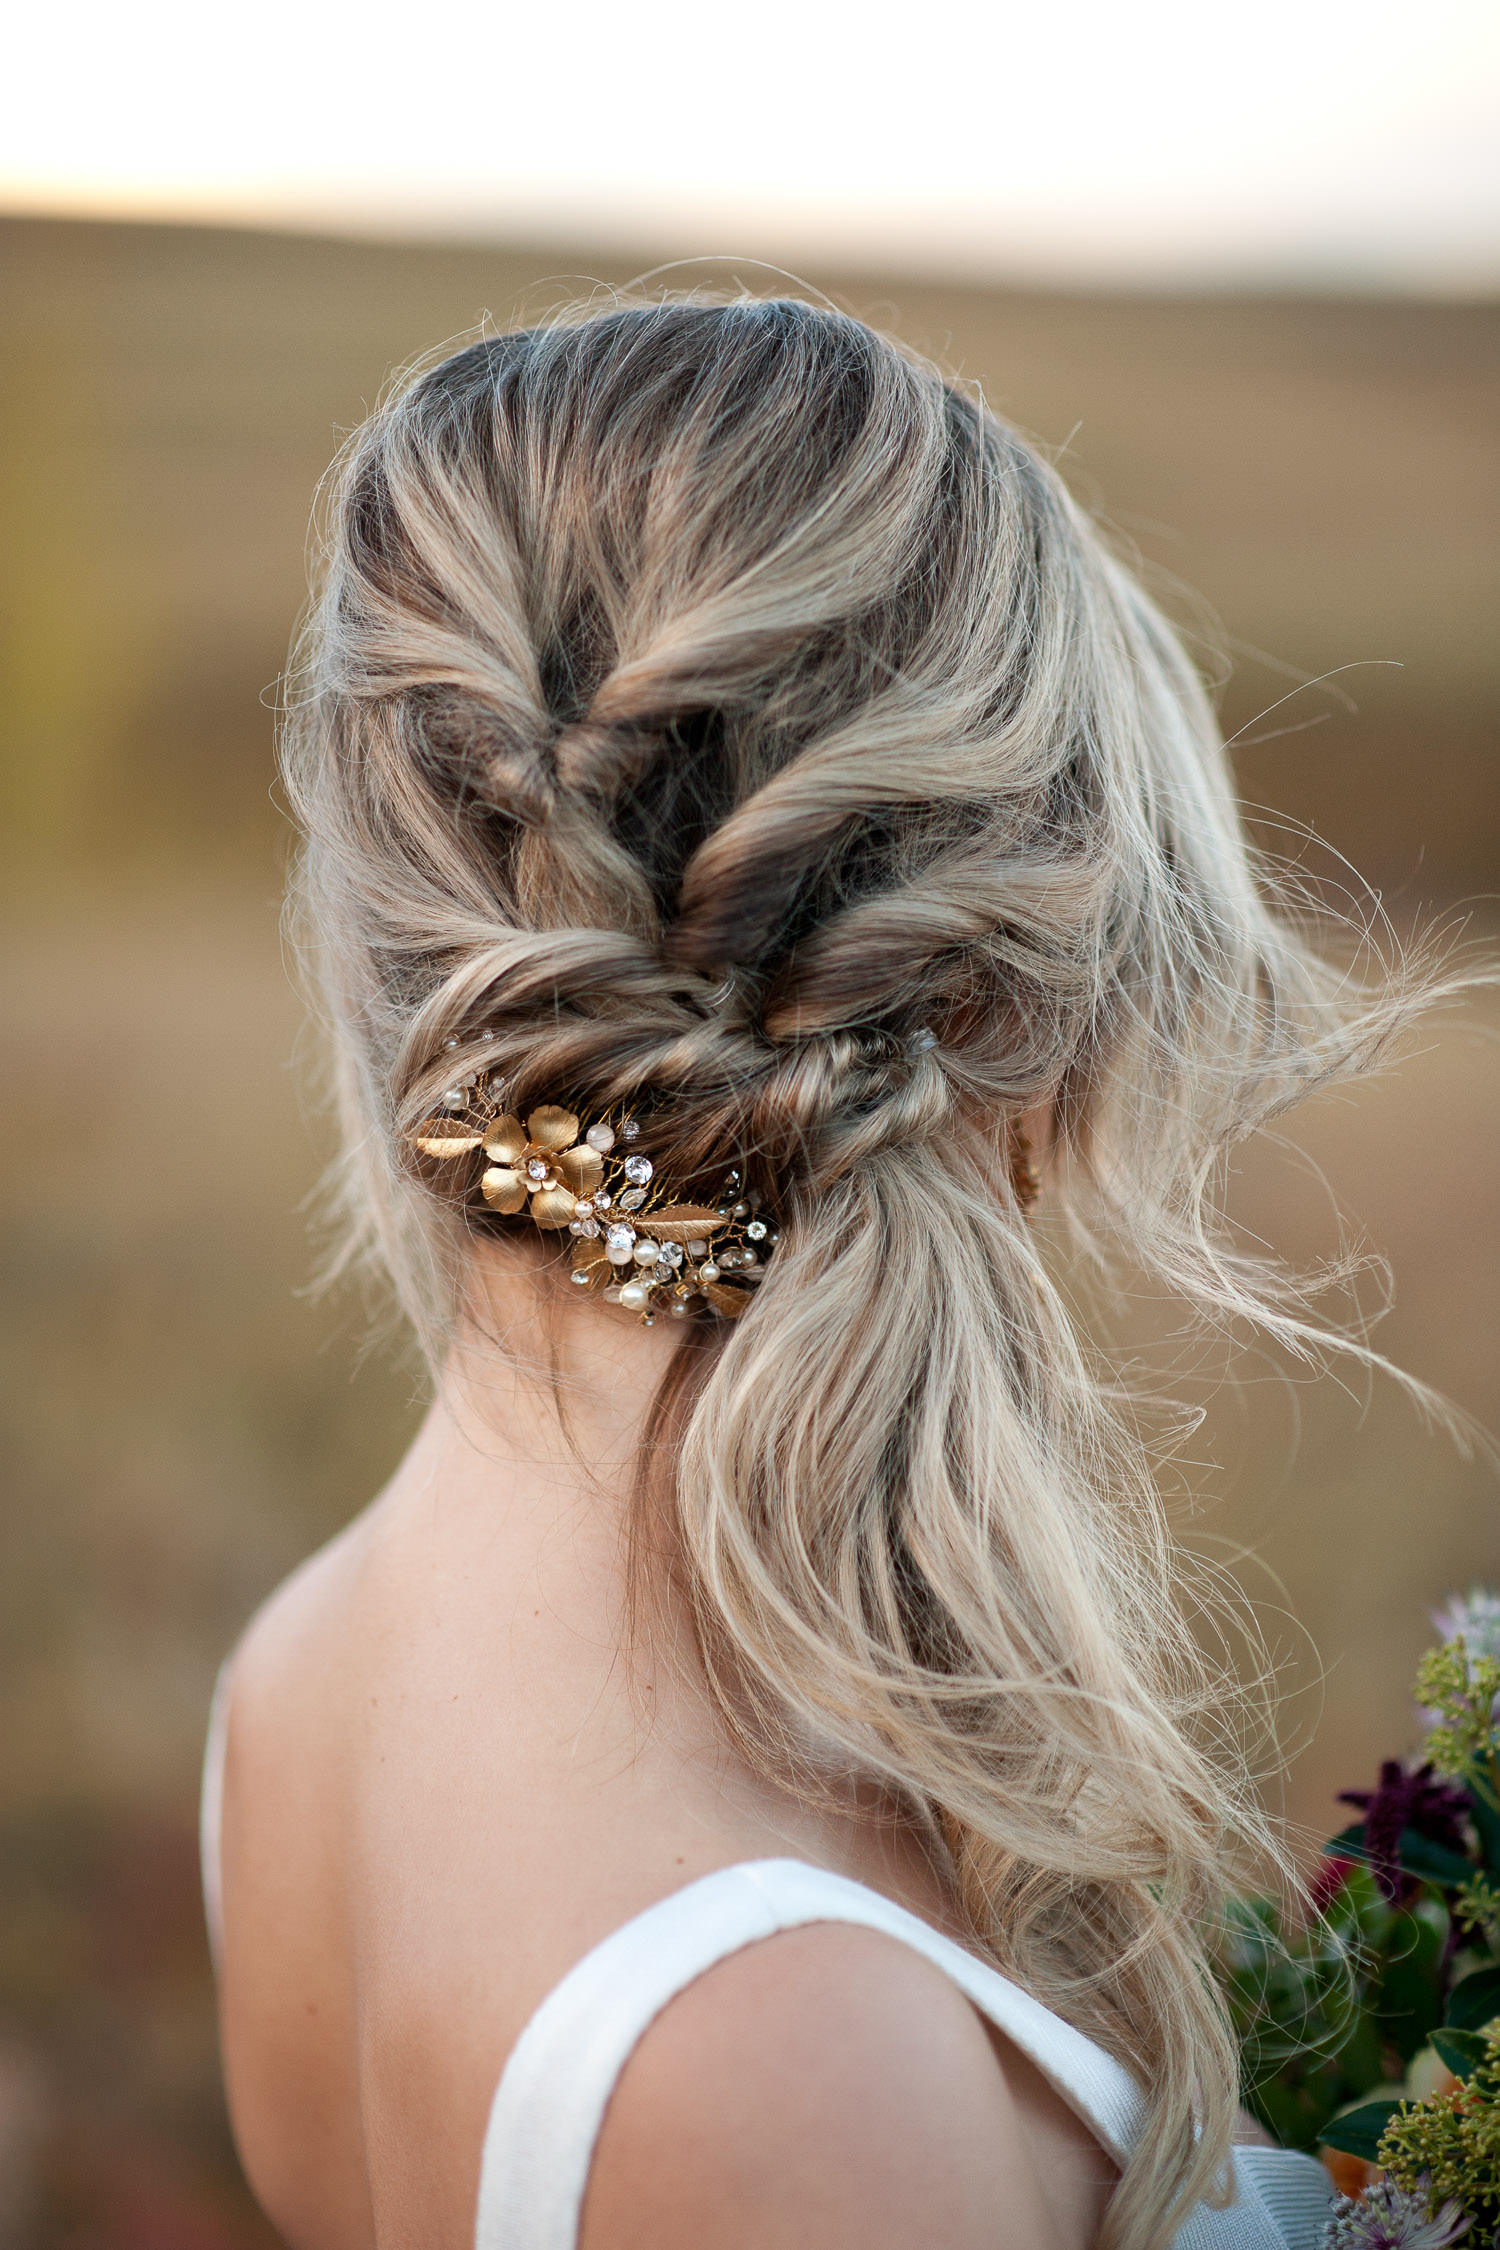 fall bridal inspiration hairpiece by Joanna Bisley captured by Tara Whittaker Photography